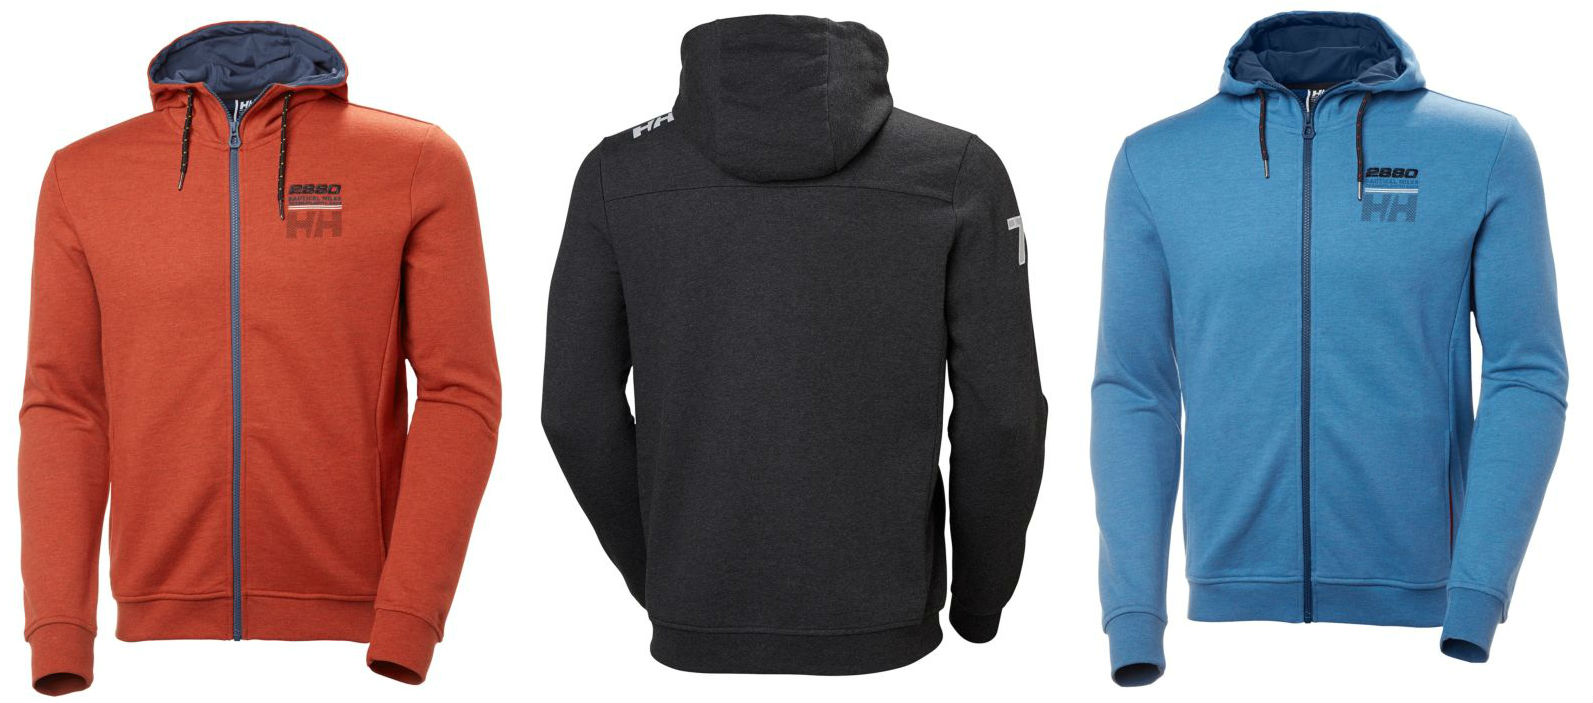 review of Club FZ Hoodie by Helly Hansen